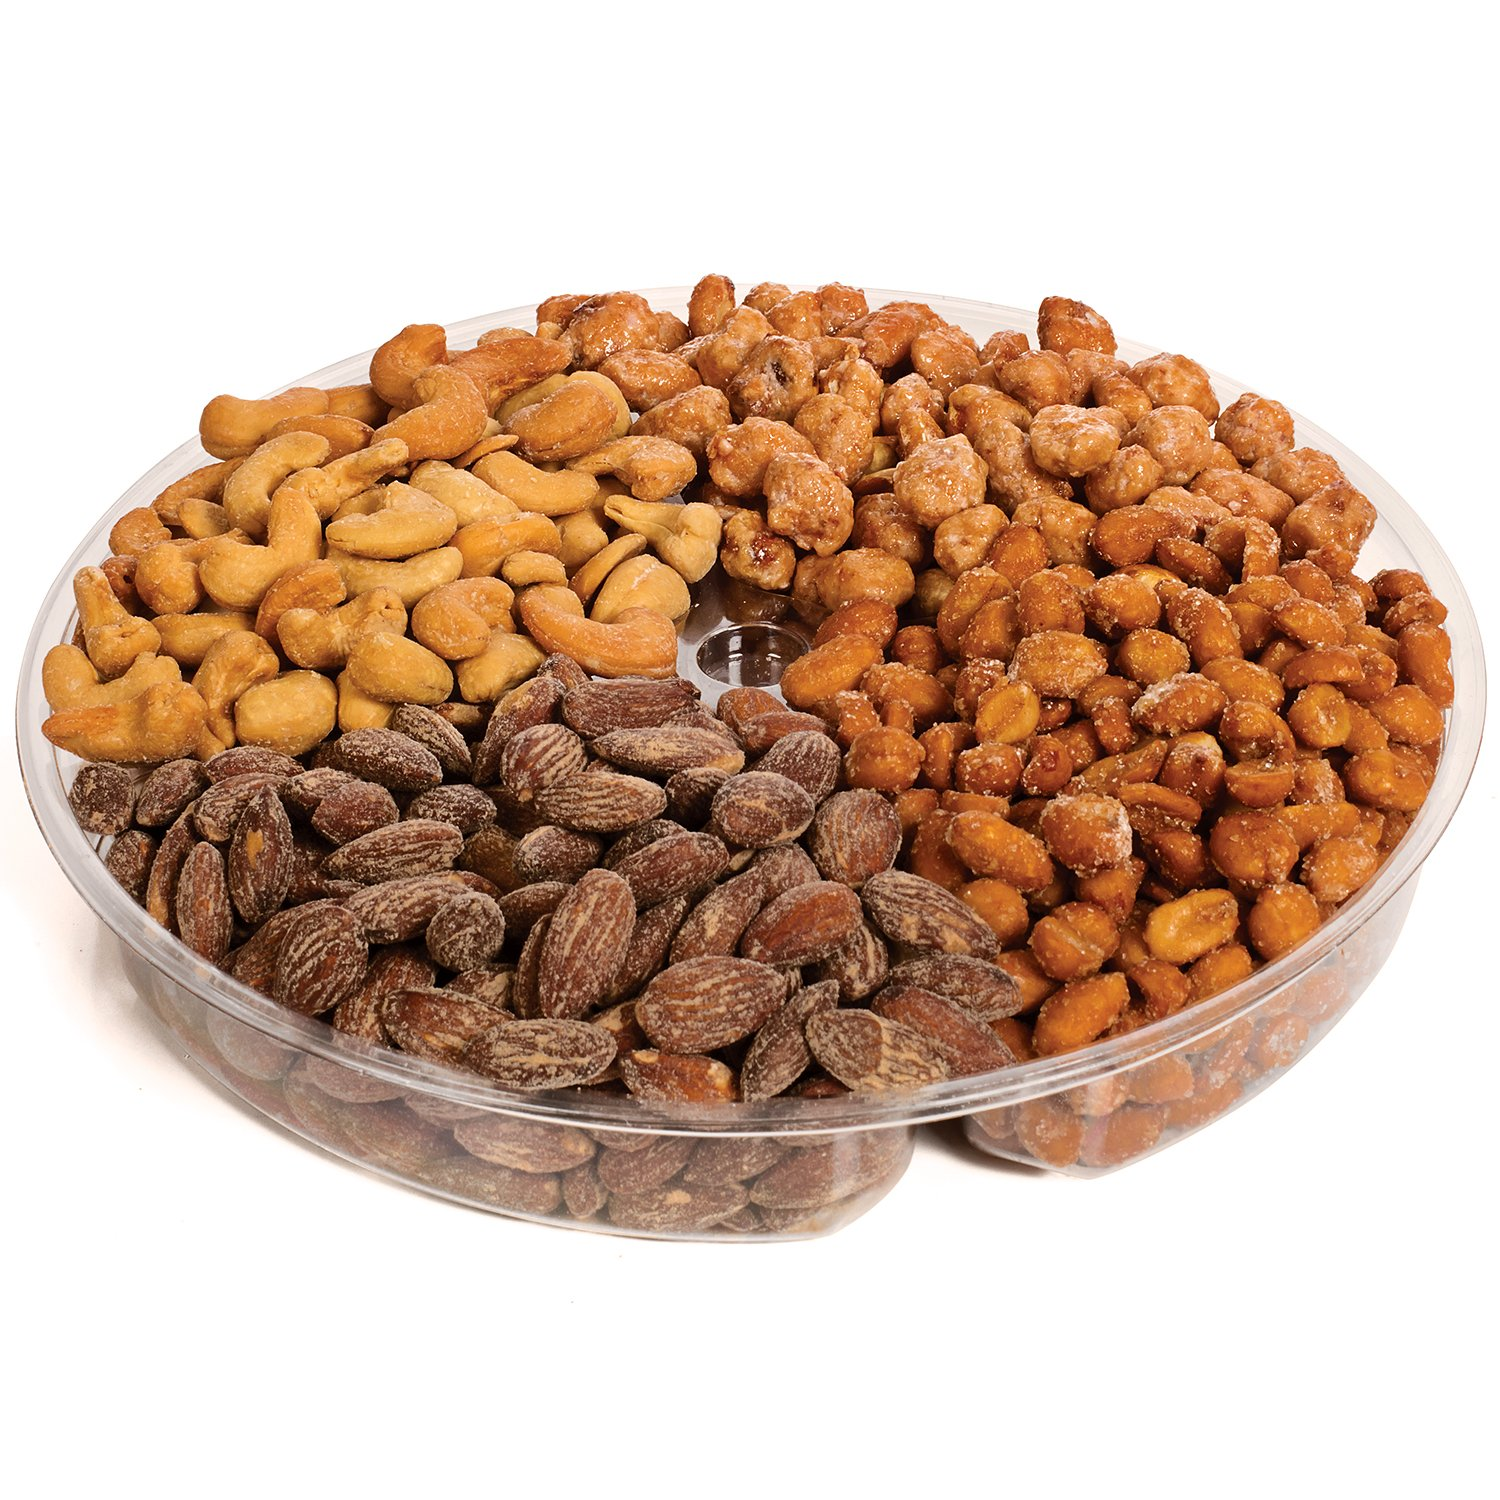 Jaybee's Nuts Gift Tray - Great Holiday, Corporate, Birthday Gift, or as Everyday Healthy Snack - Cashews, Smoked Almonds, Toffee & Honey Roasted Peanuts, Vegetarian Friendly and Kosher by Jaybee's (Image #2)